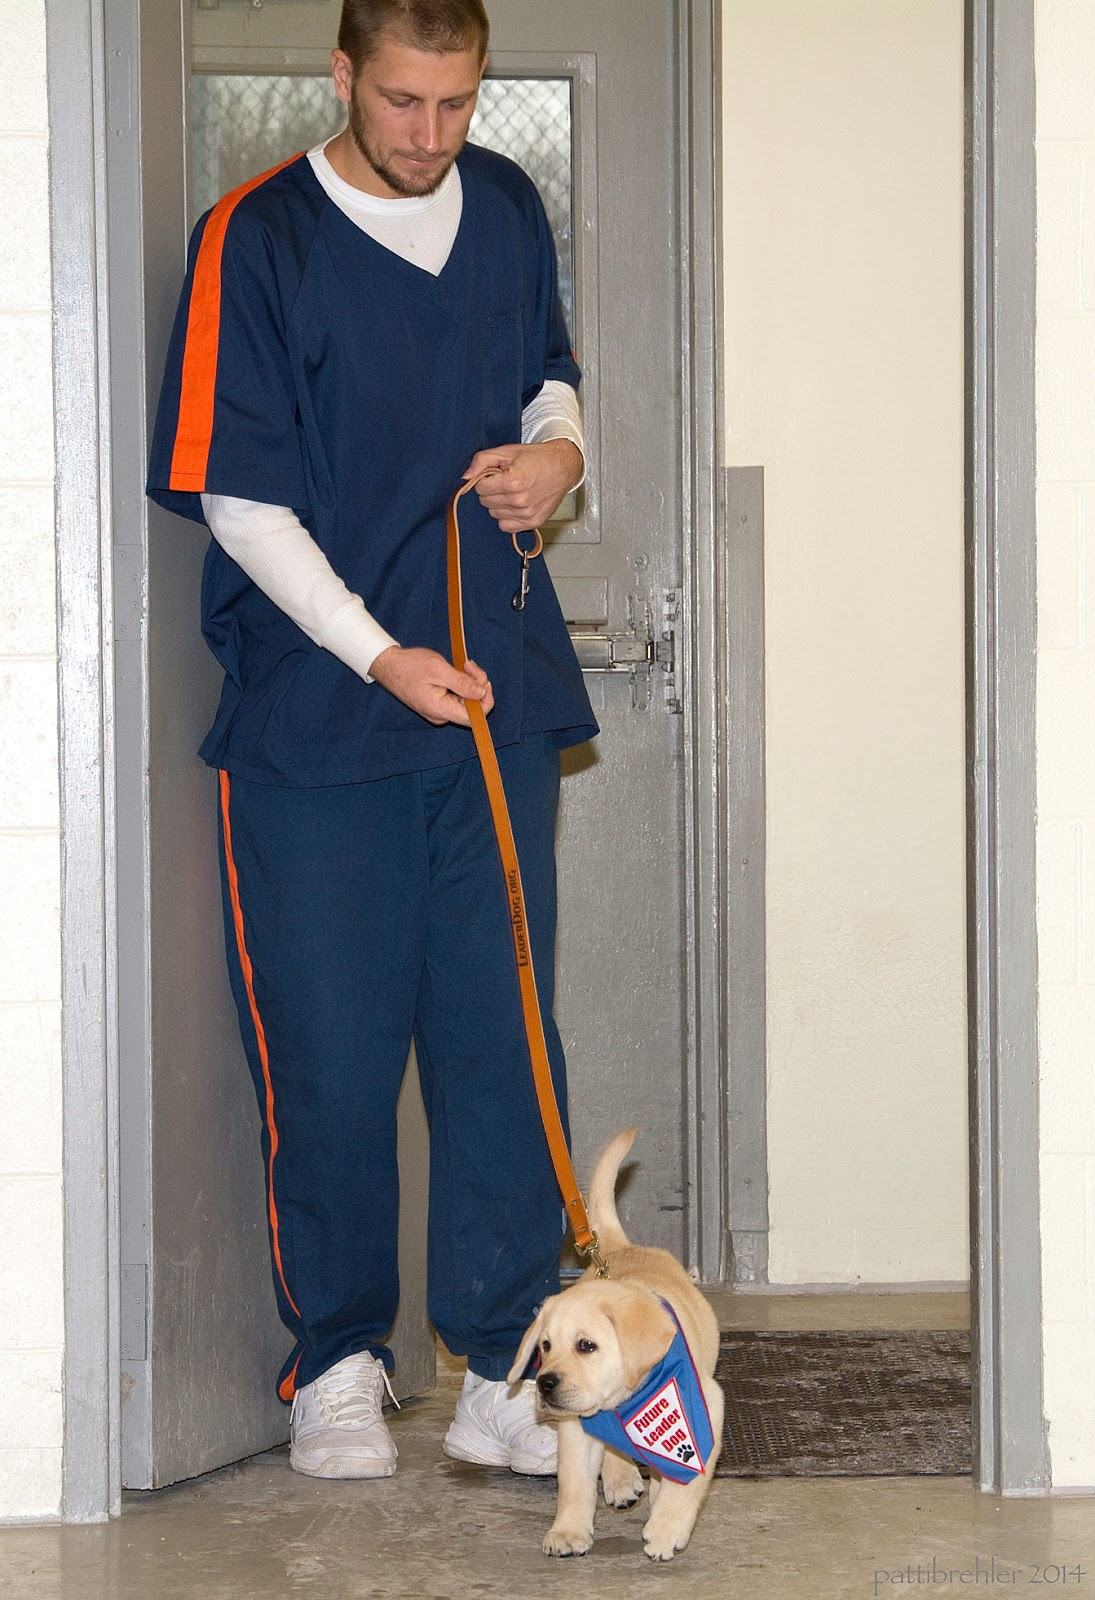 A man dressed in blue shirt and pants with orange stripes and white tennis shoes comes through a door toward the camera. He is looking down at a small yellow Lab puppy that he has on a brown leather leash.  The puppy is wearing a blue bandana with a white triangle patch with red letters that say Future Leader Dog and a black paw print.